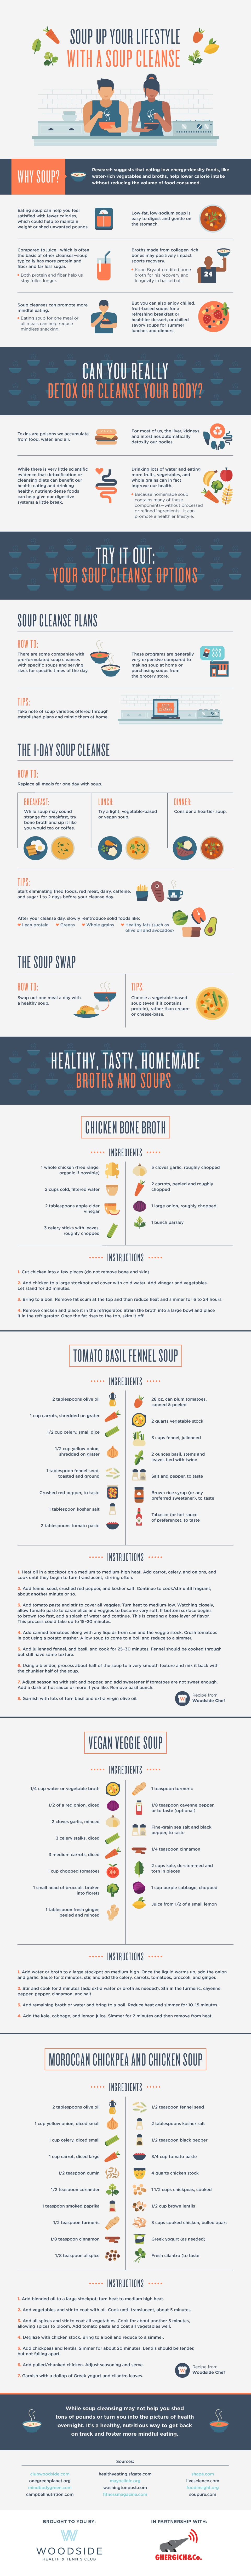 The Soup Cleanser Diet for a Healthier You - Infographic